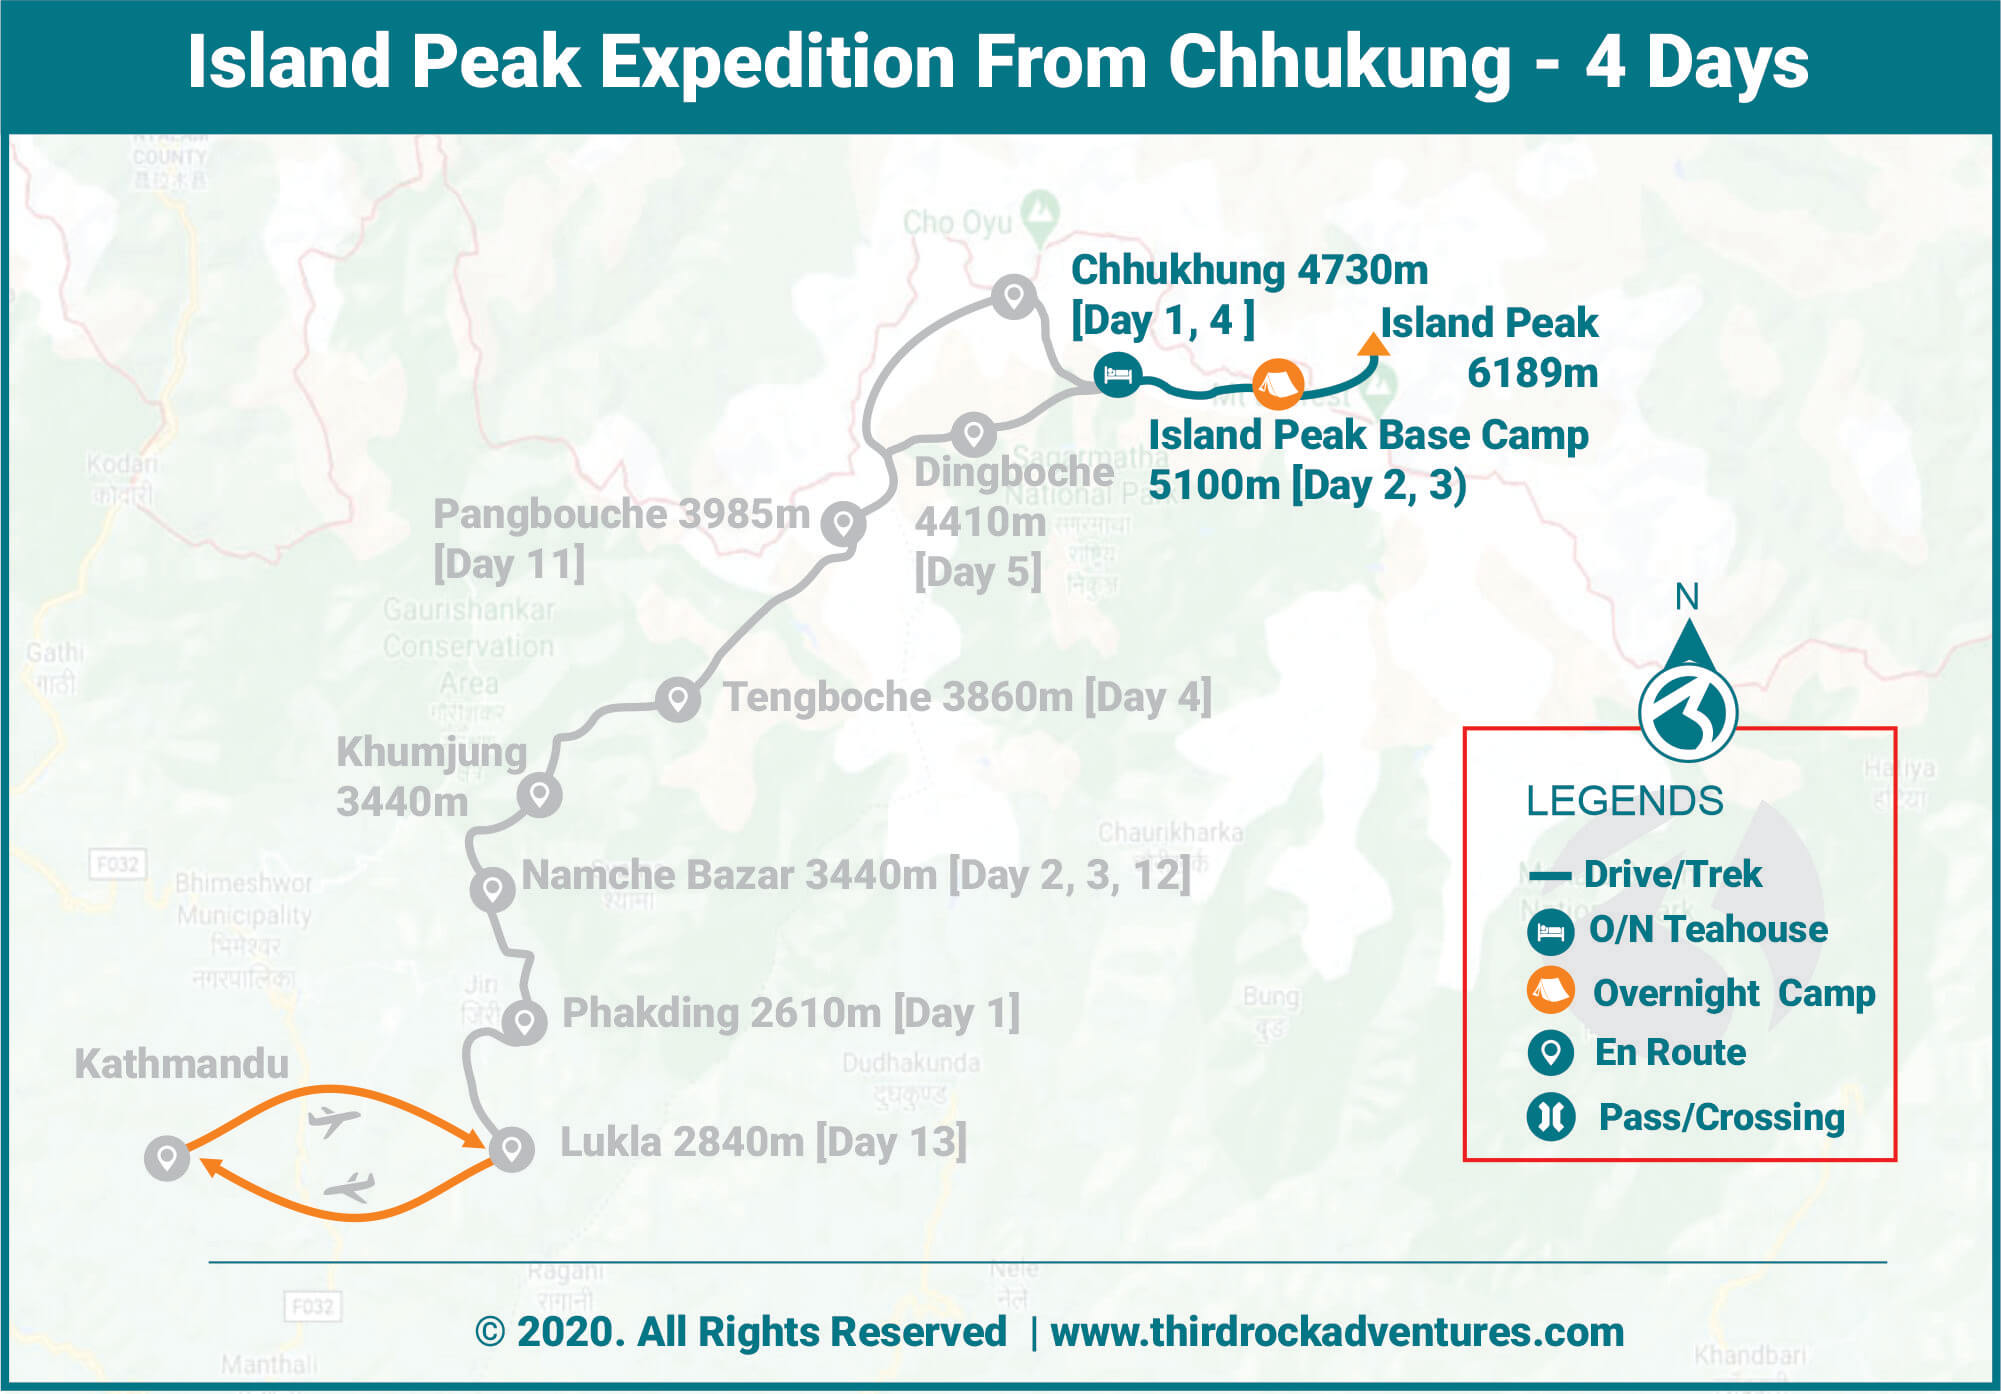 Island Peak Expedition 4 Days Route Map